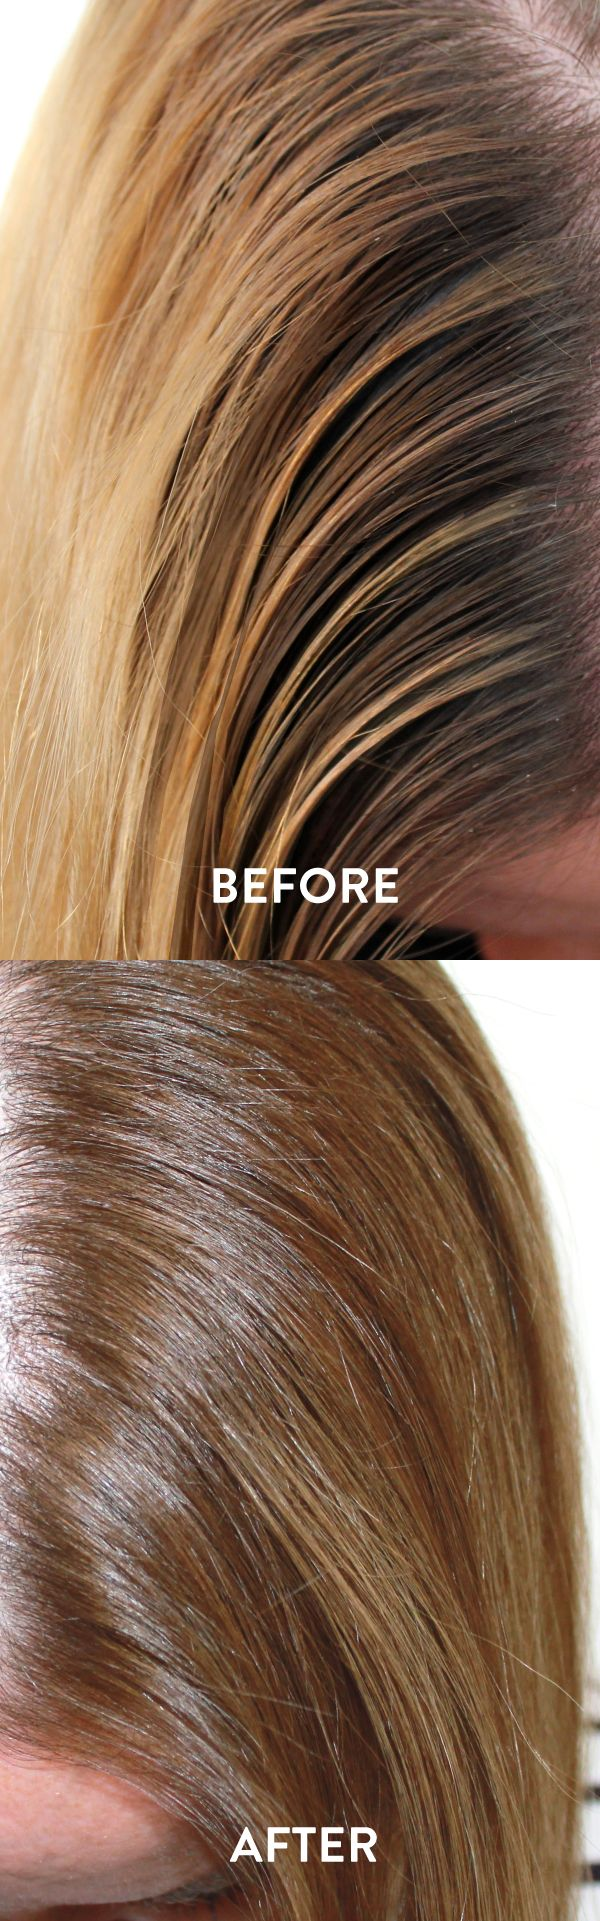 How To Fix Your Tiger Stripe Highlights How To In 2018 Pinterest